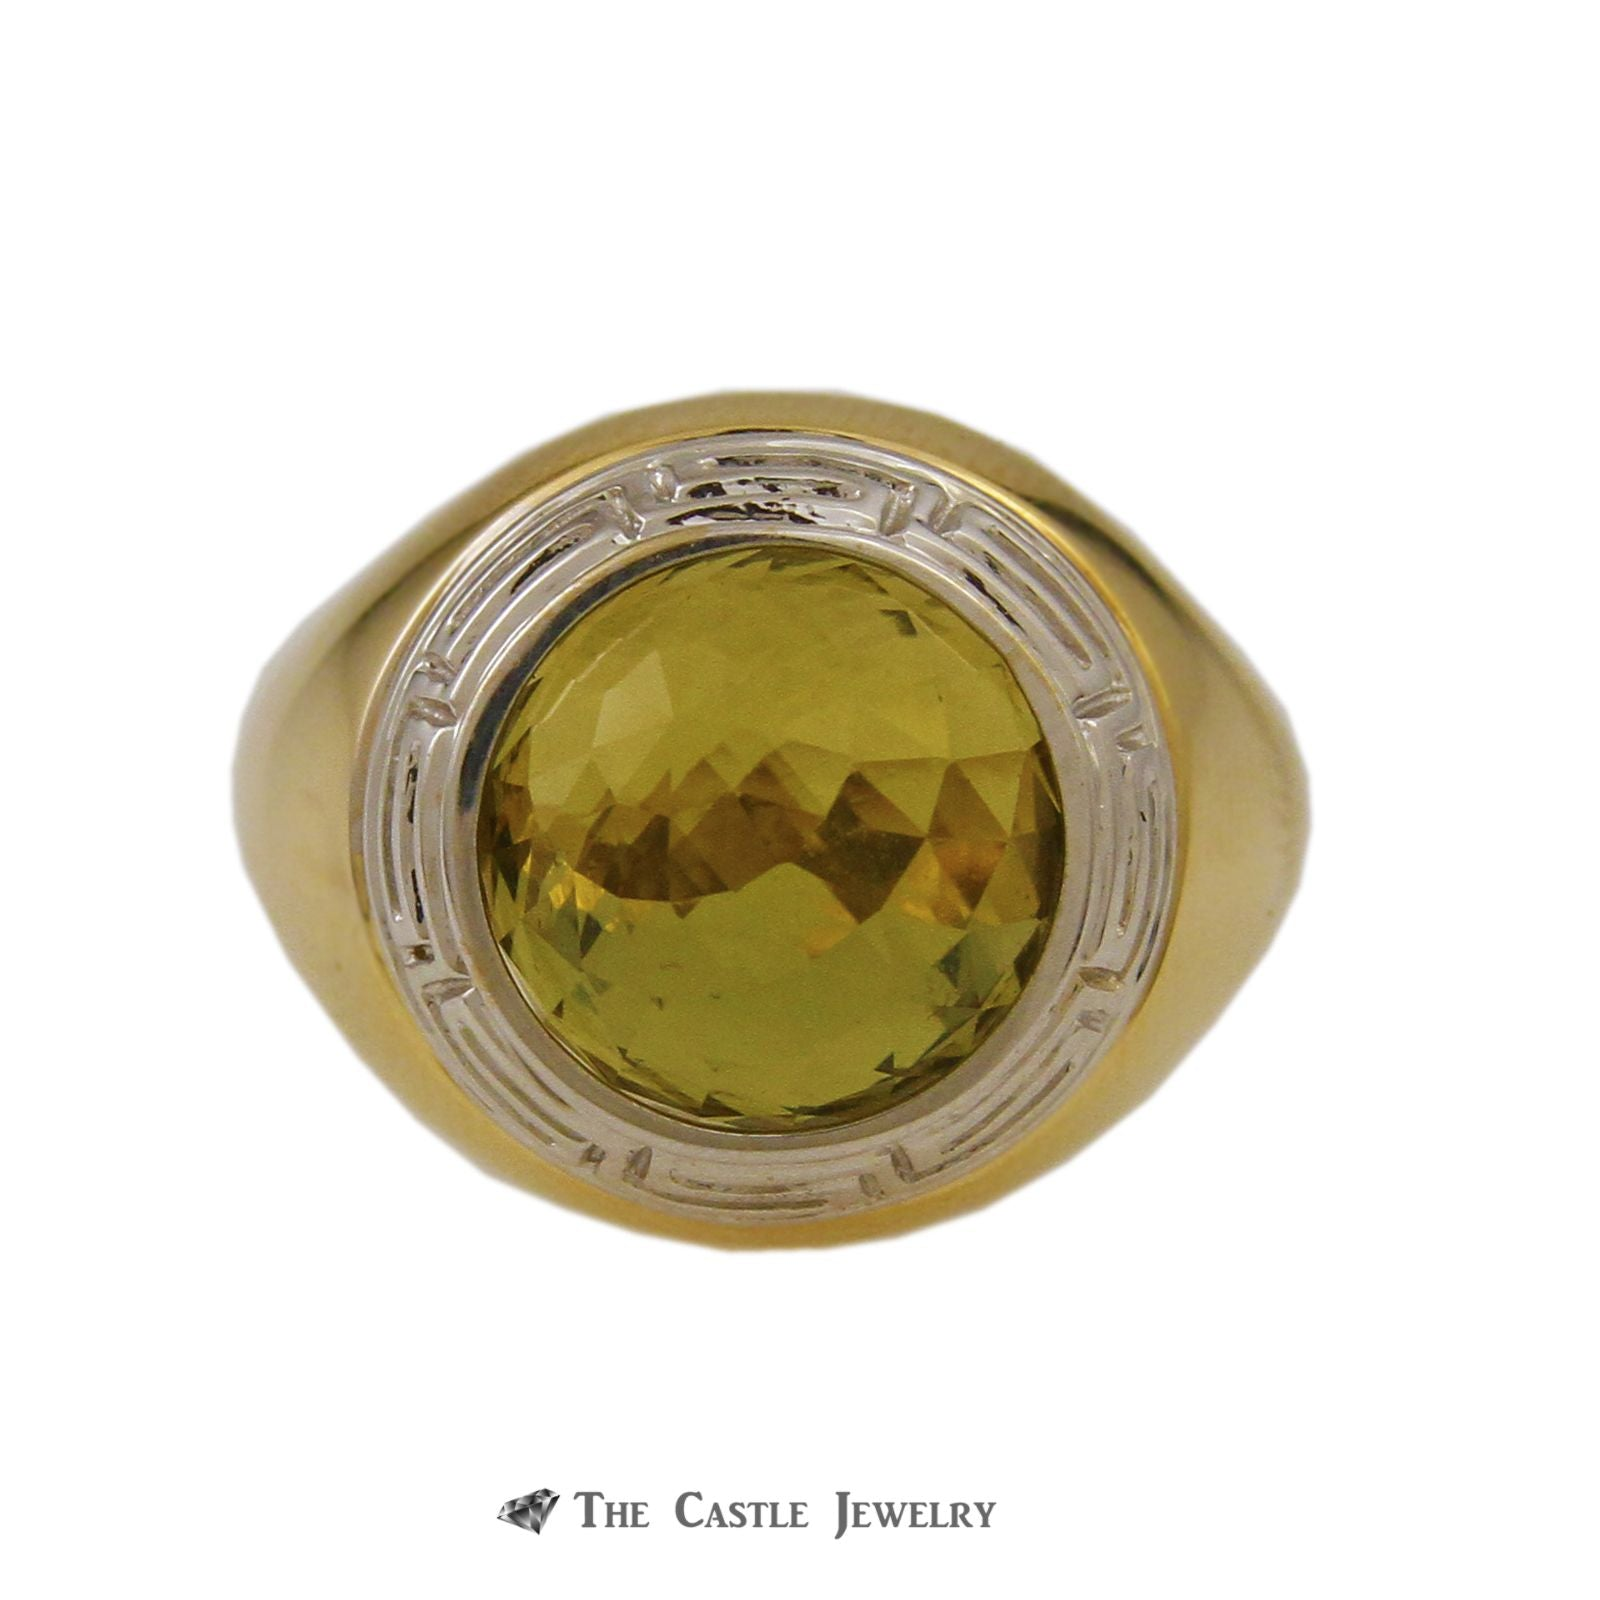 Interchangeable Fantasy Cut Gemstone Sphere Ring w/ Greek Key Design Crafted in 18k Yellow Gold-1